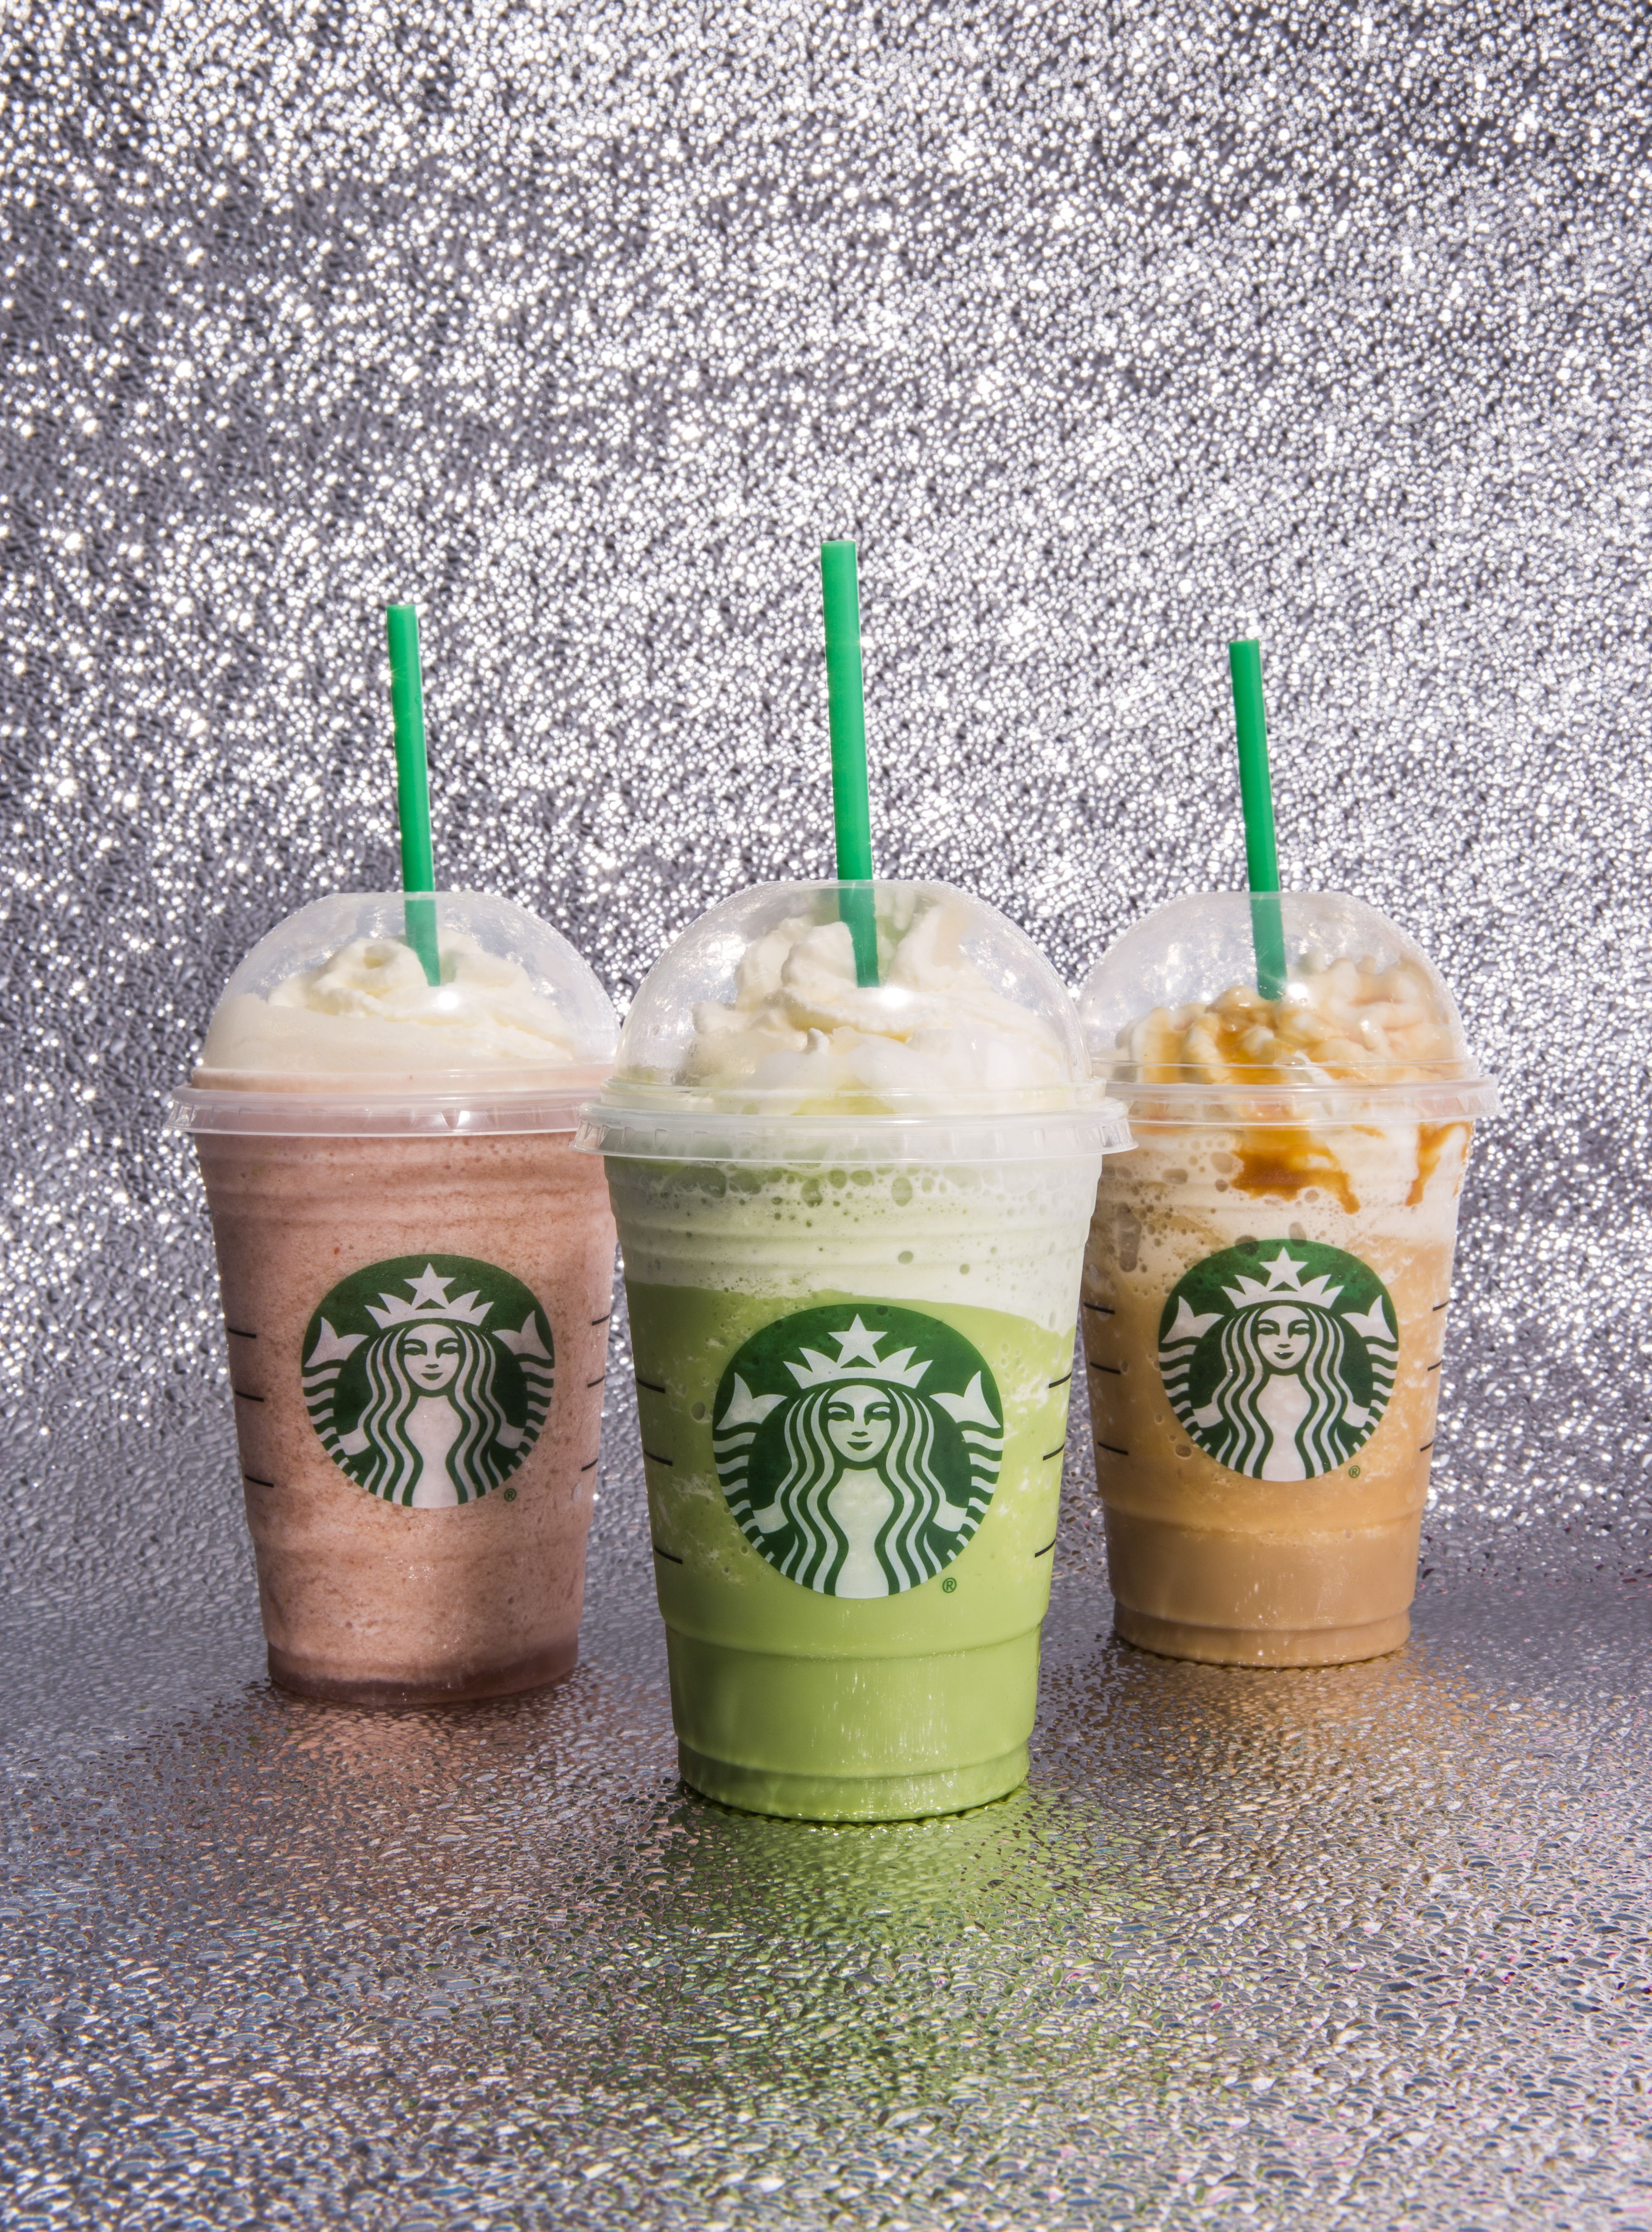 Here's How To Get A Free Starbucks Frapuccino Or Espresso